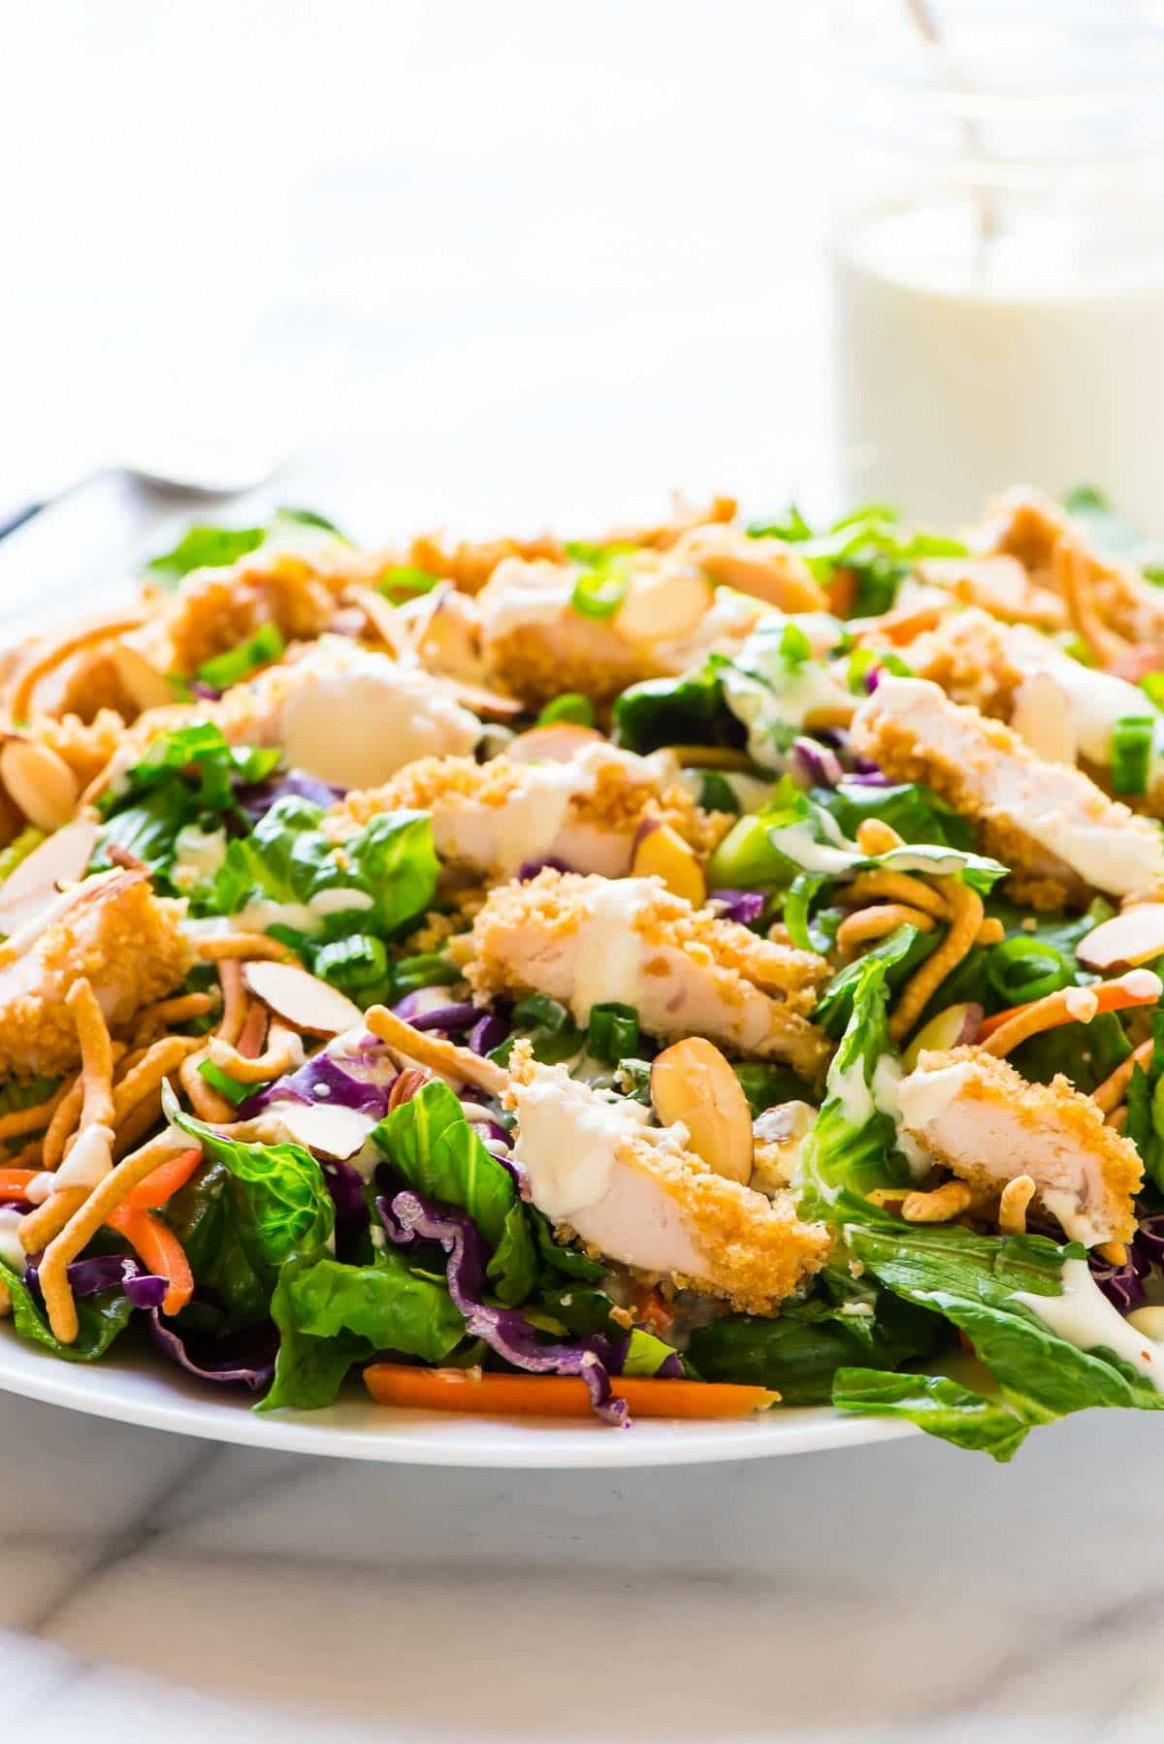 Applebee's Oriental Chicken Salad with Oriental Dressing - recipes for chicken salad